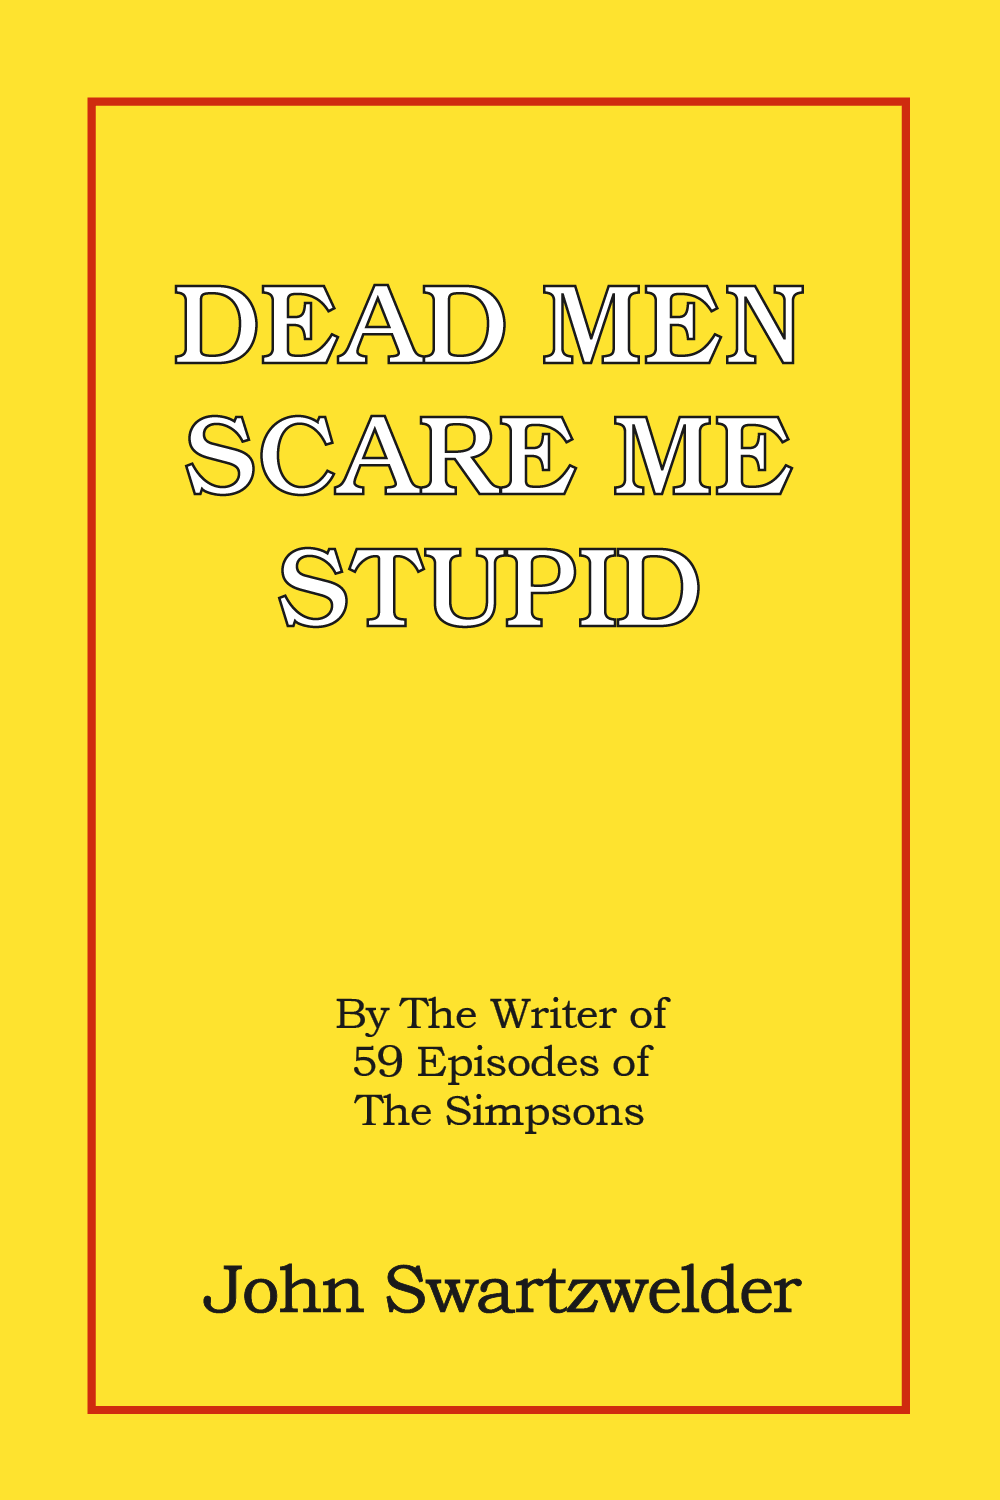 Dead Men Scare Me Stupid by John Swartzwelder